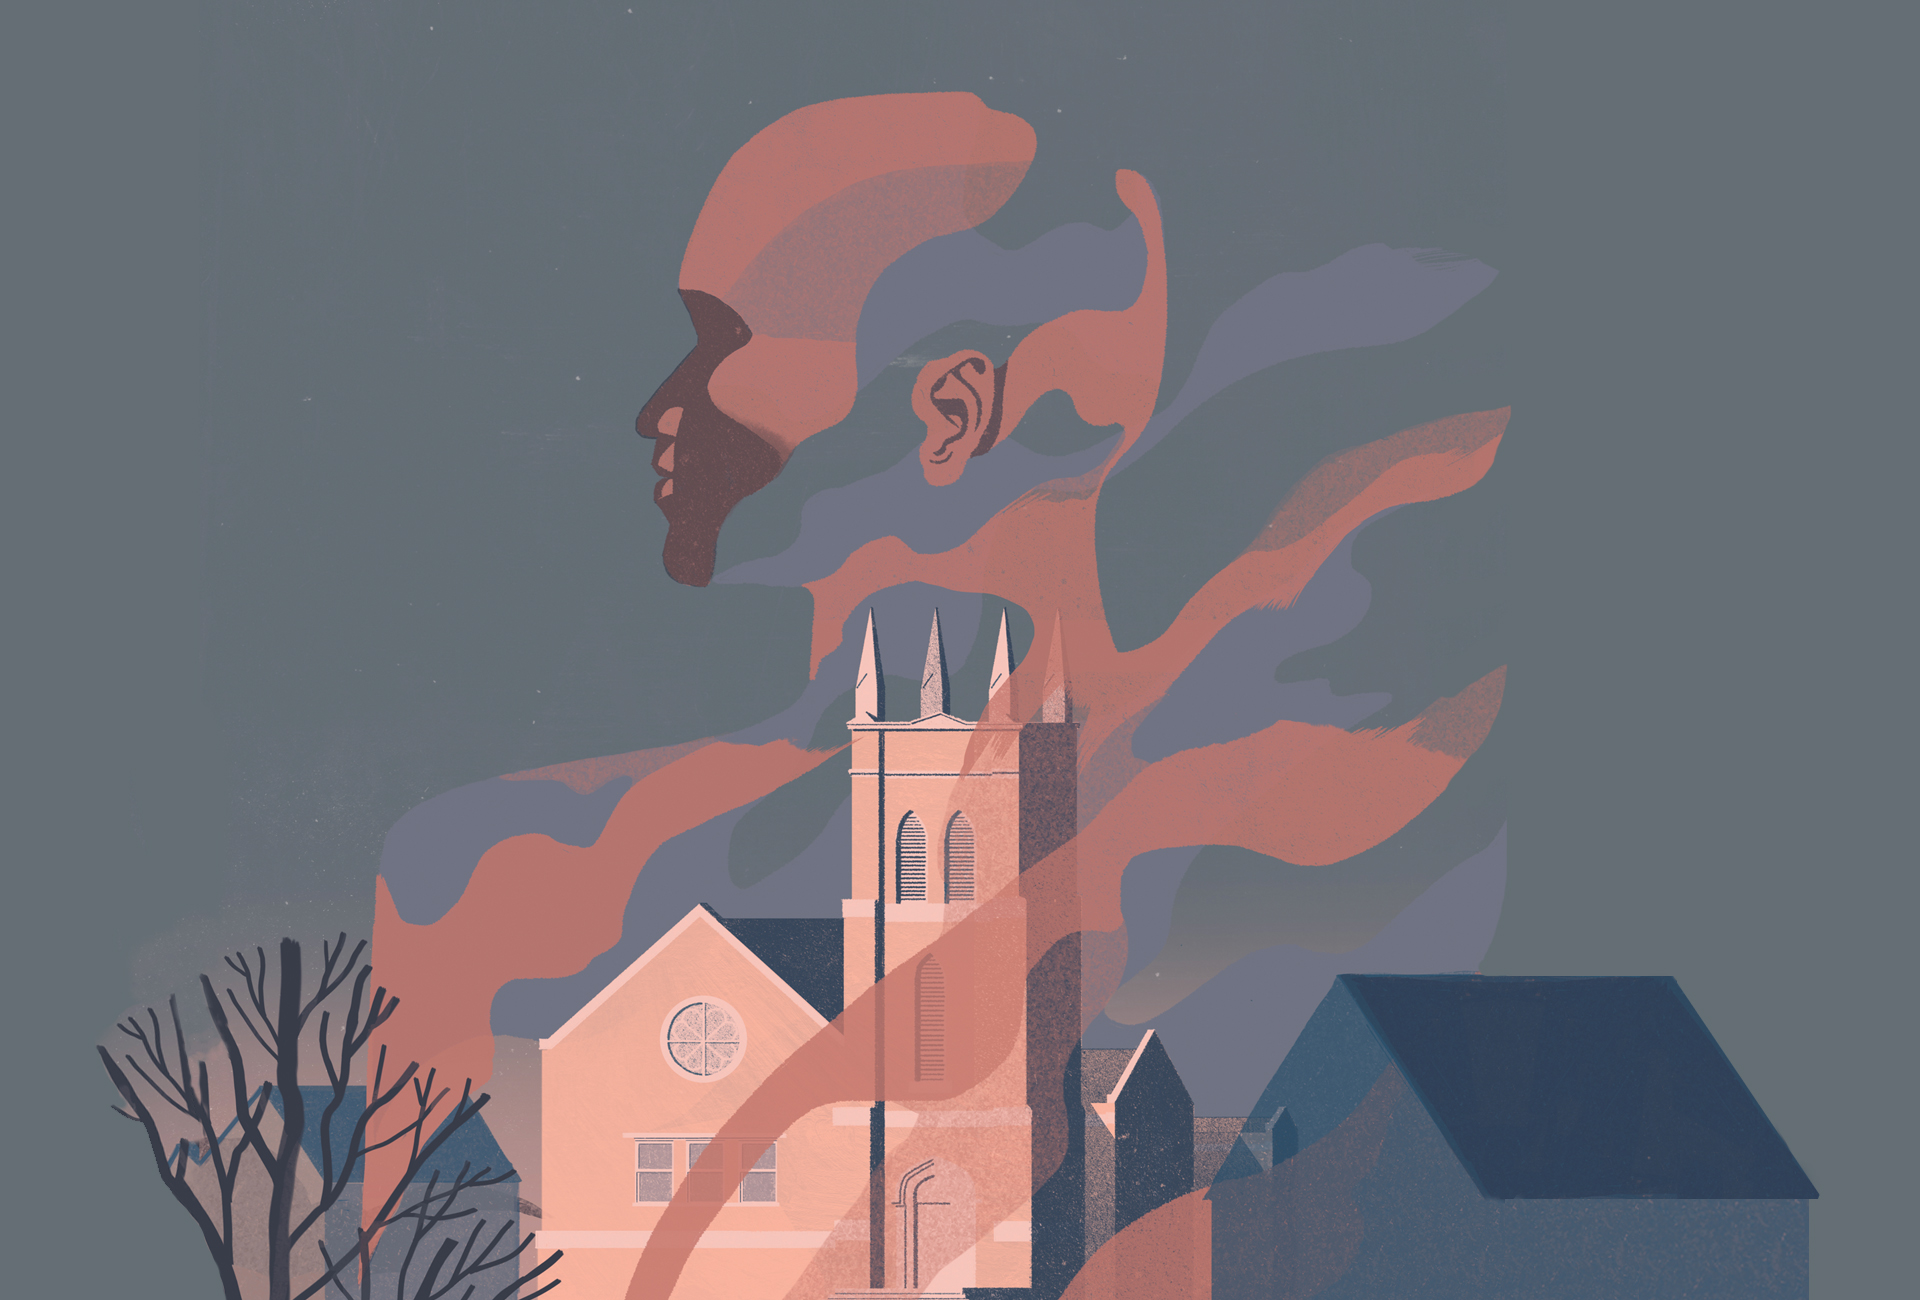 Surreal illustration of a church in Austin amid a neighborhood. A ghostly mist floats above the church and into the grey sky. The apparition is in the shape of a profile of an African-American's face.